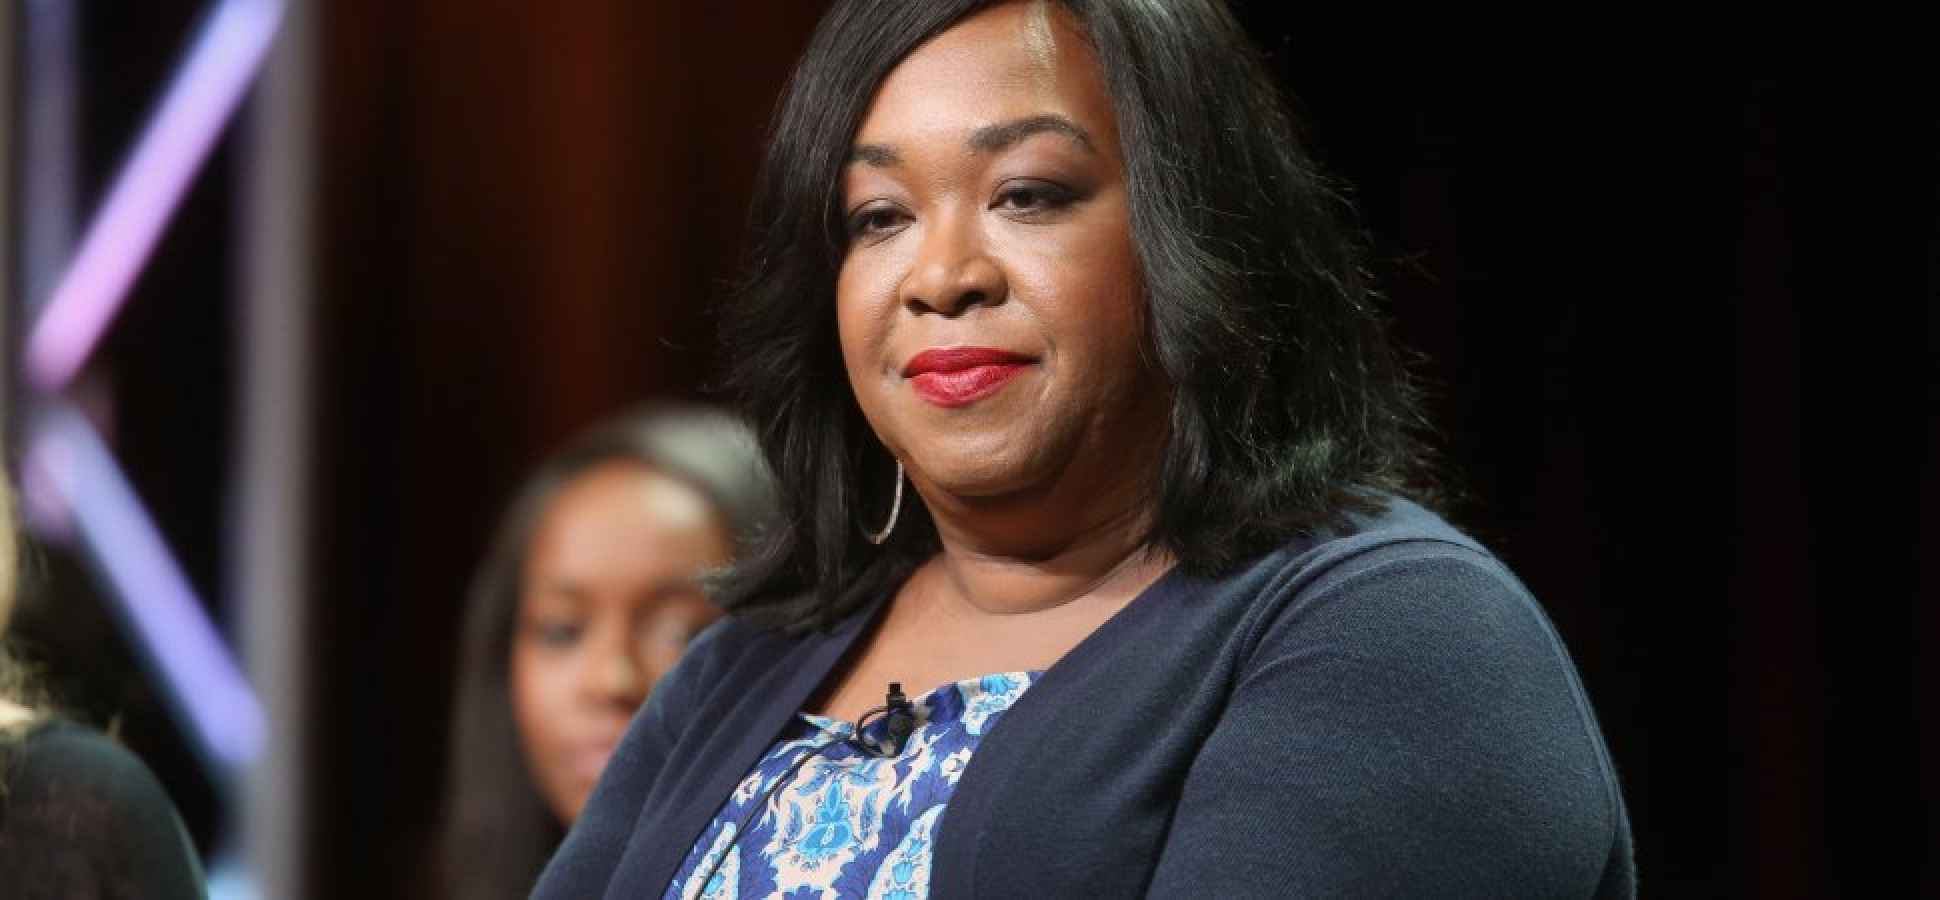 Shonda Rhimes's Empowering Speech Pays Tribute to Women Who Broke Glass Ceilings